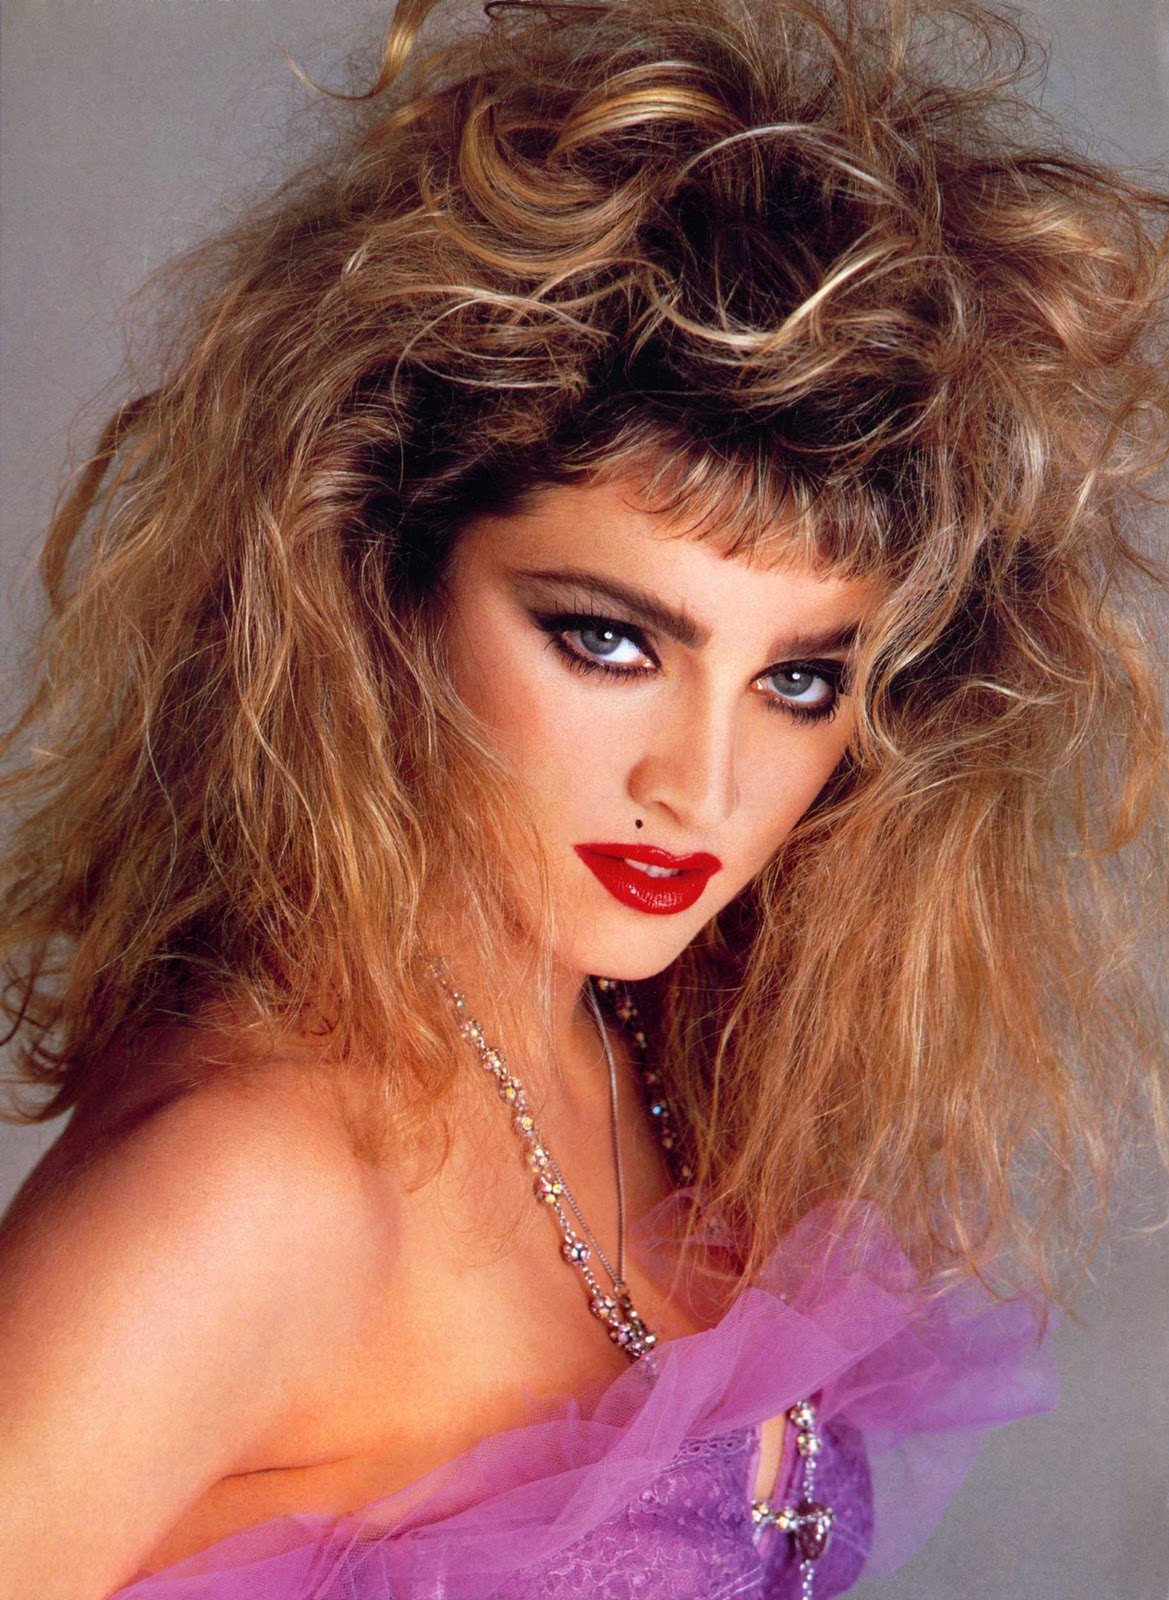 life on mars?!: Beauty Through the Decades: 80's